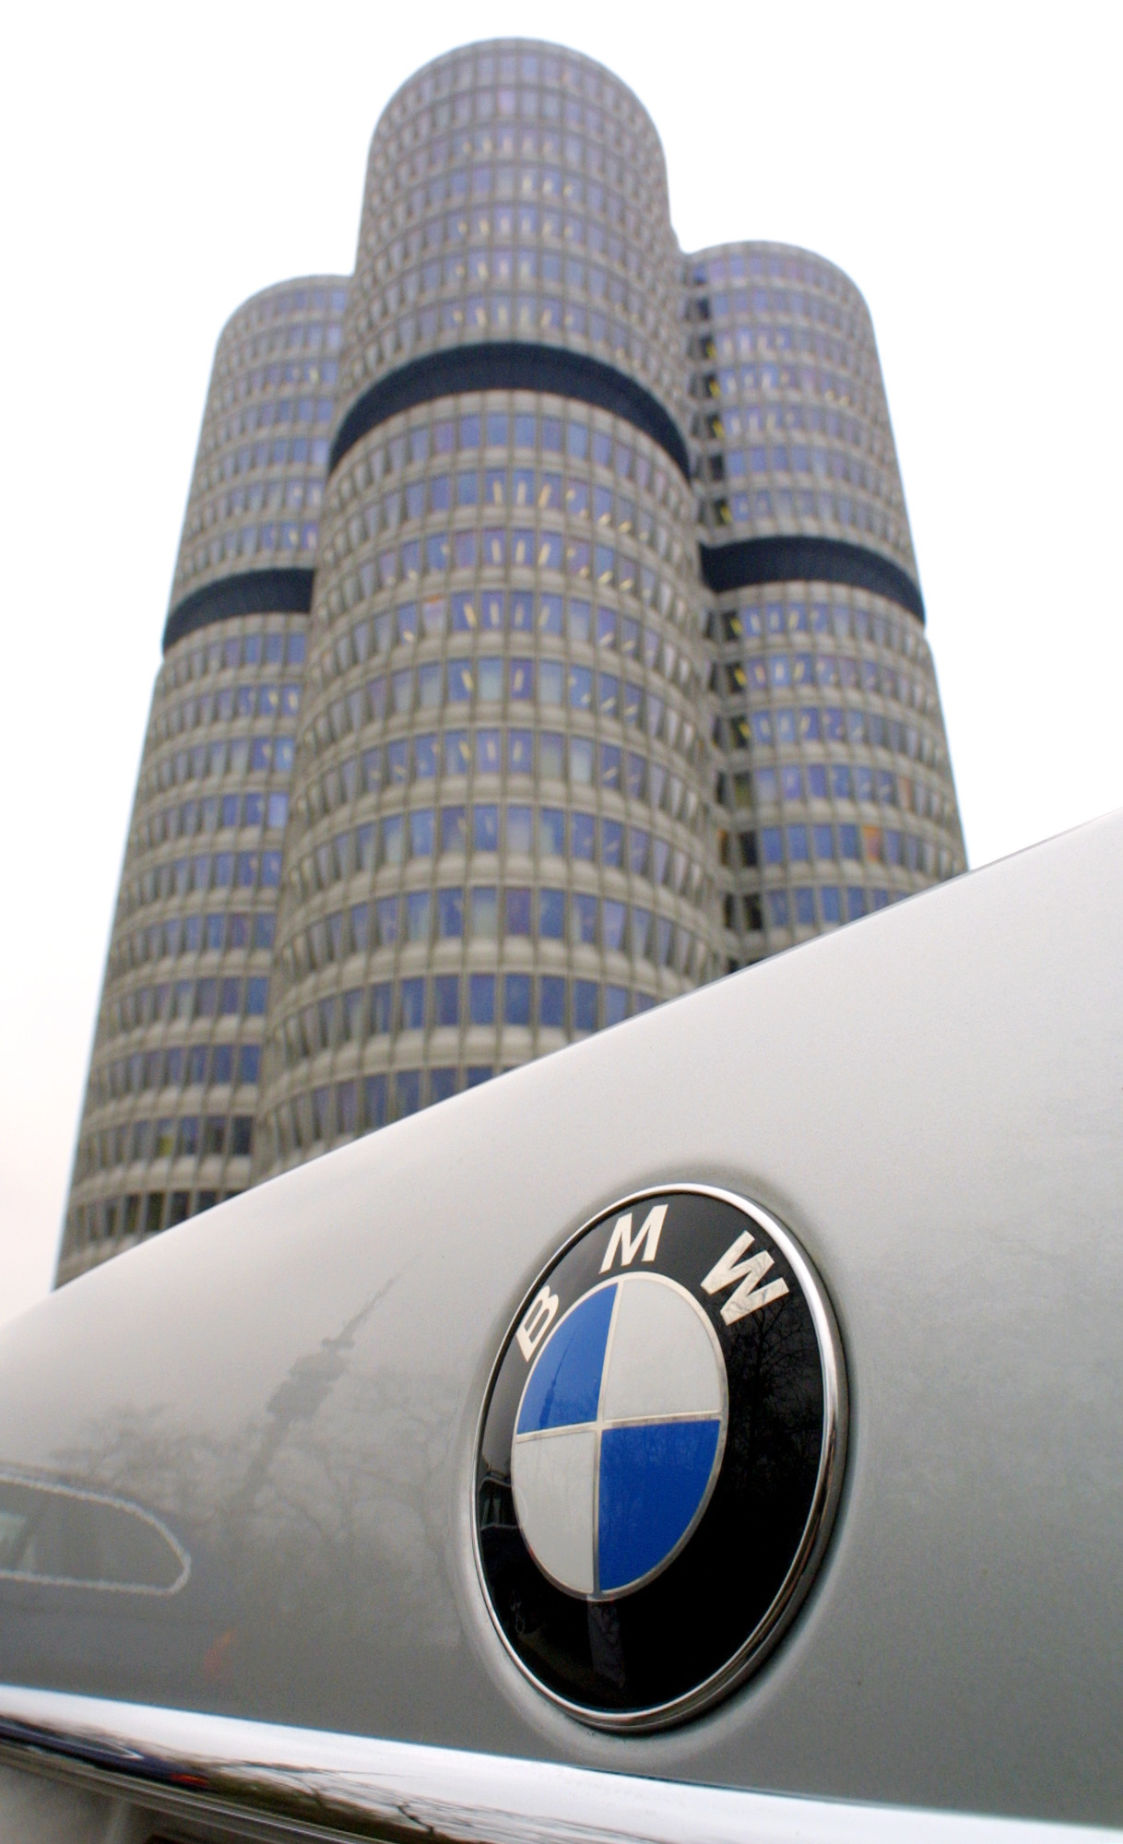 BMW betting mouse click will lure buyers for $48,500 electric auto